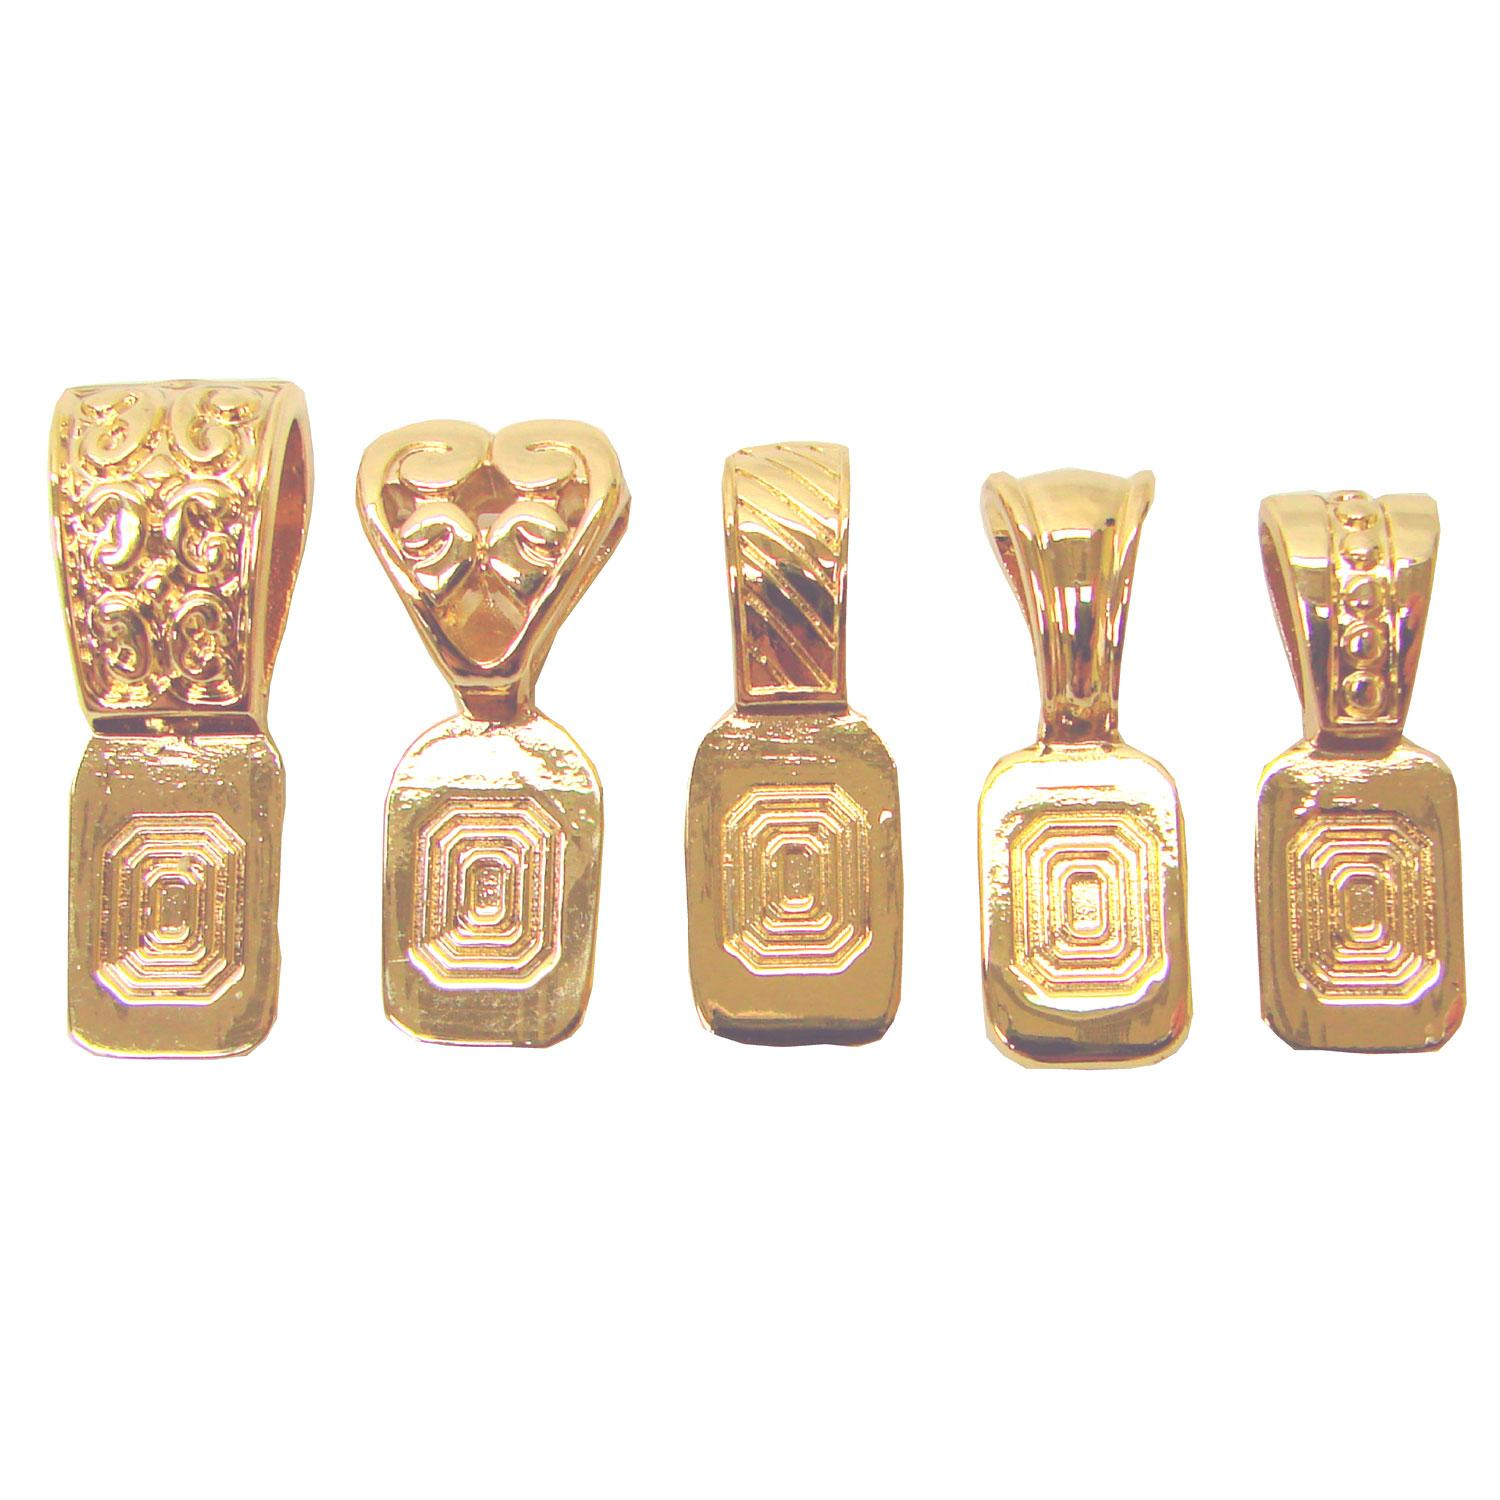 Gold Plated Variety Art Bails - 5 Pack